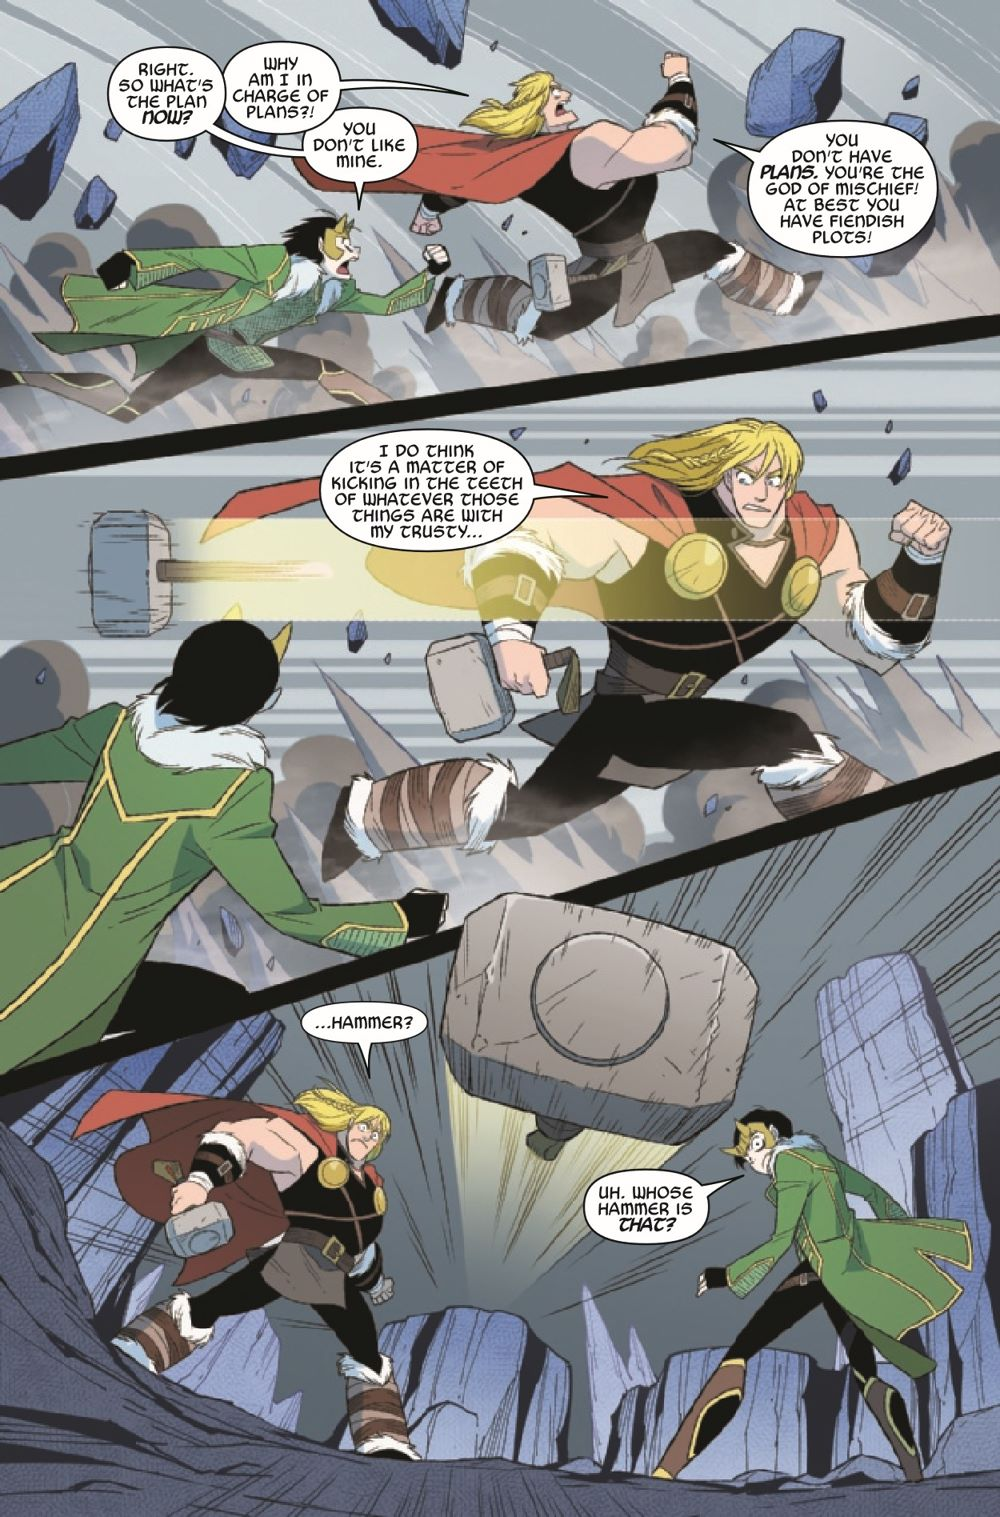 THORLOKIDT2021003_Preview-4 ComicList Previews: THOR AND LOKI DOUBLE TROUBLE #3 (OF 4)